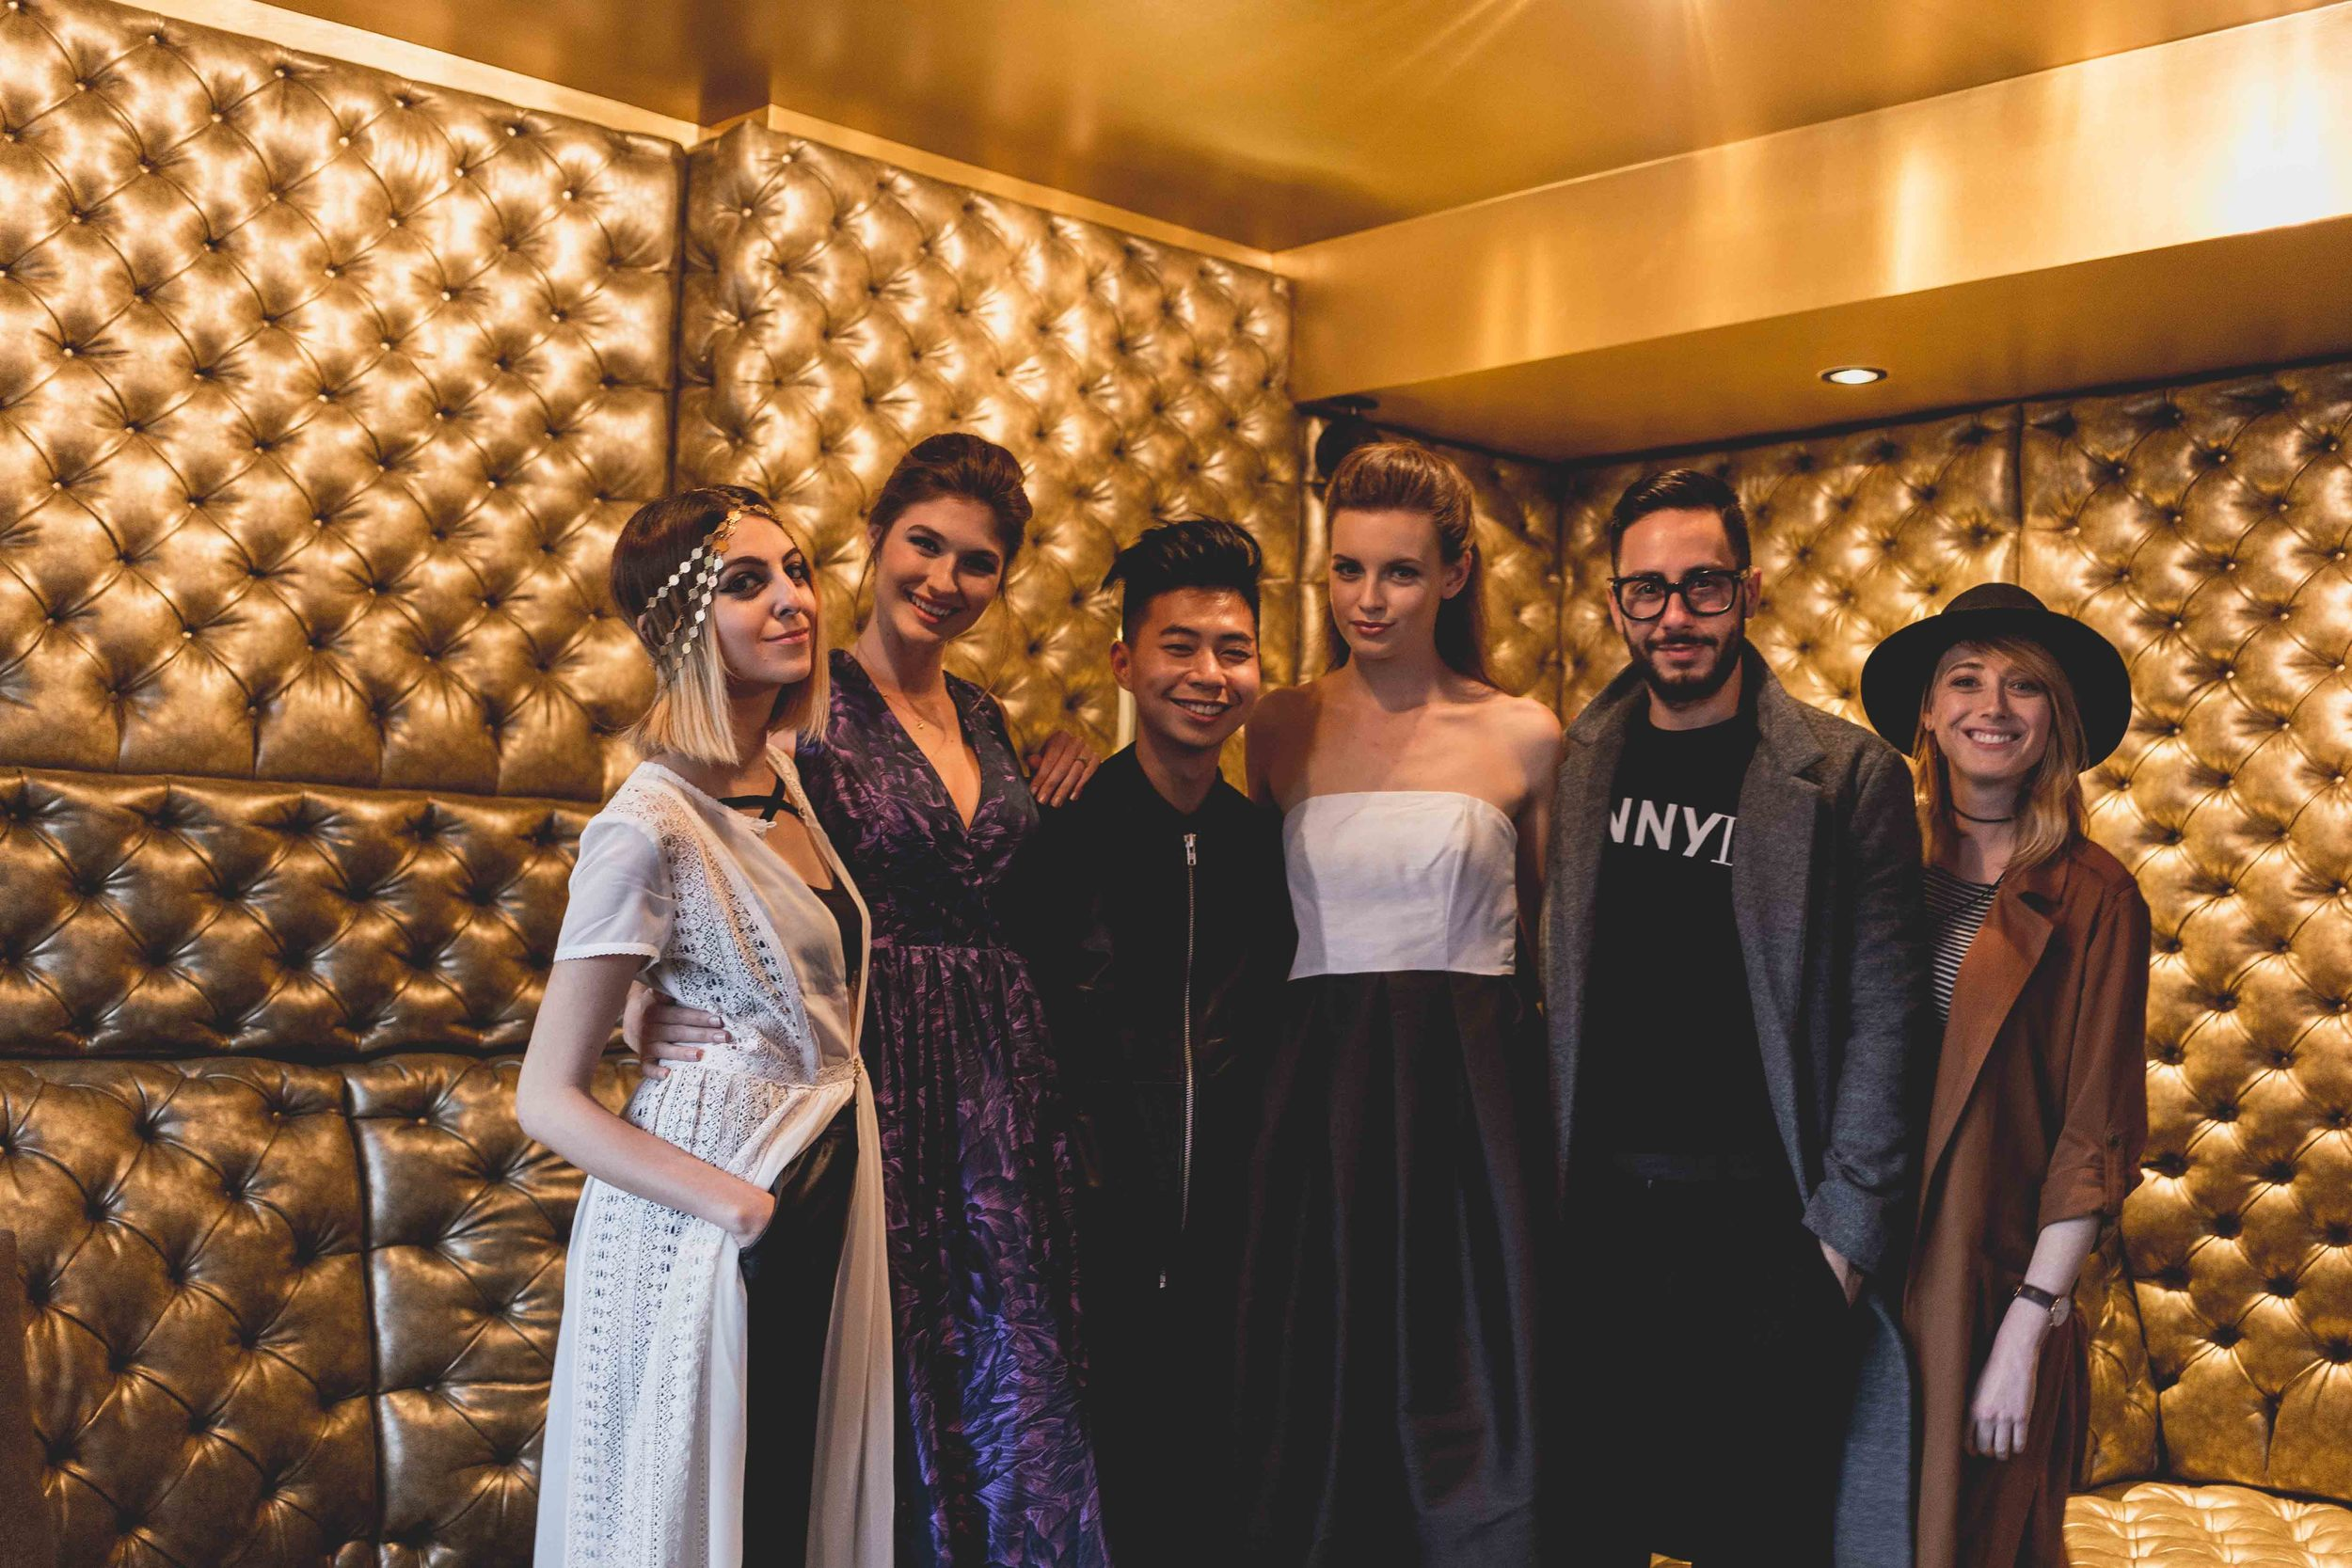 mybelonging-whotels-west-beverly-hills-EWOW-suite-23.jpg